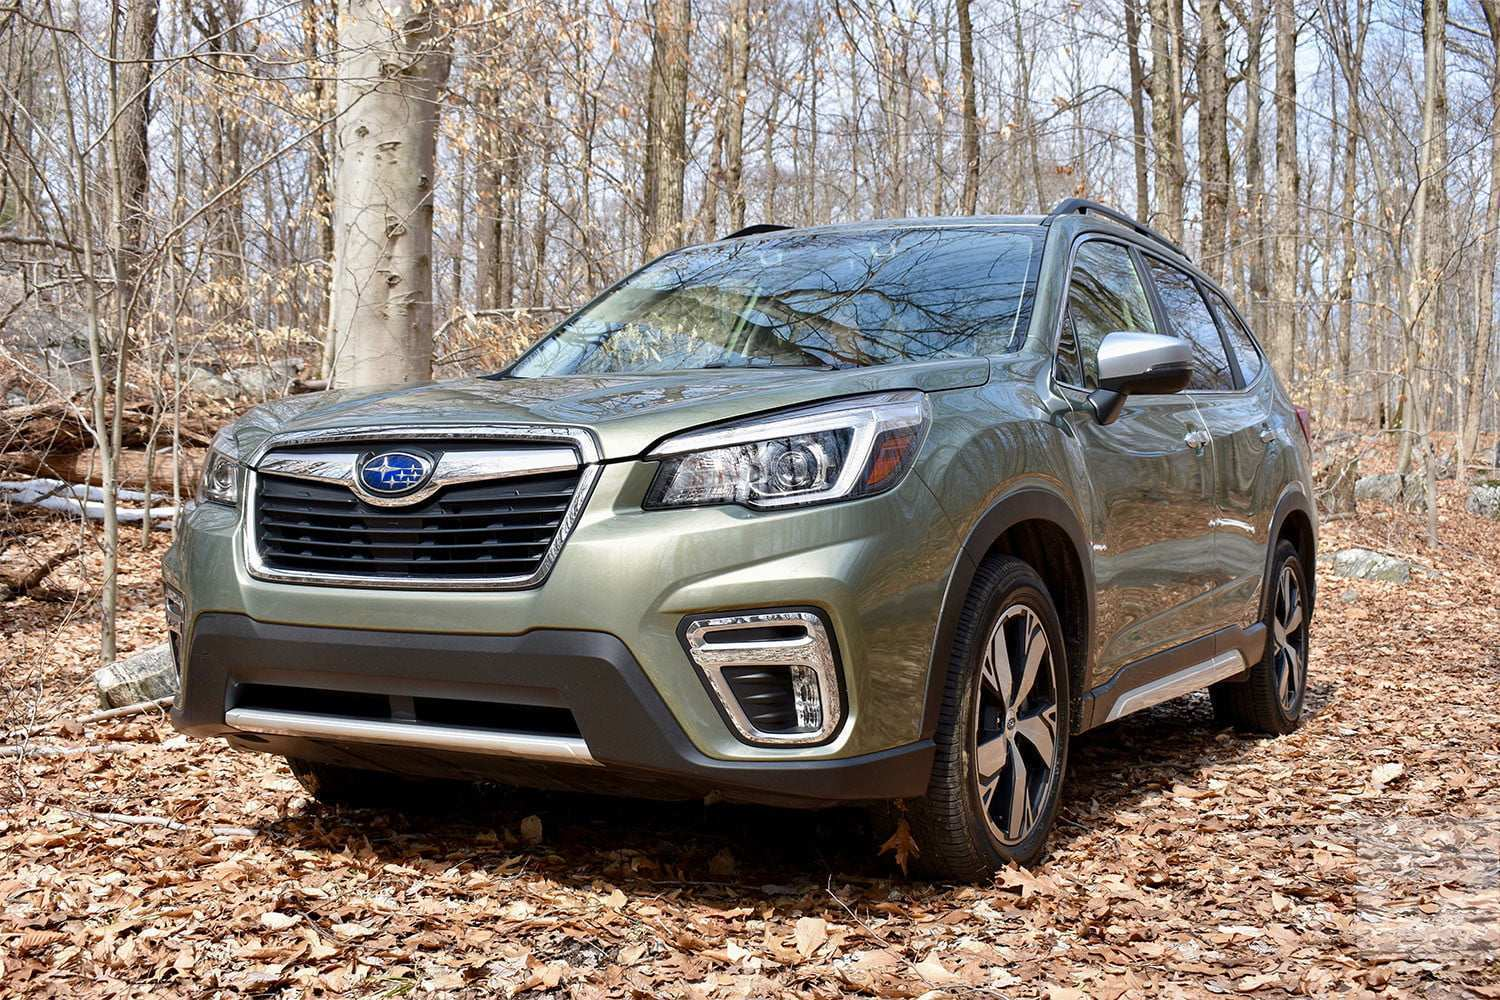 75 The 2019 Subaru Forester Design Speed Test